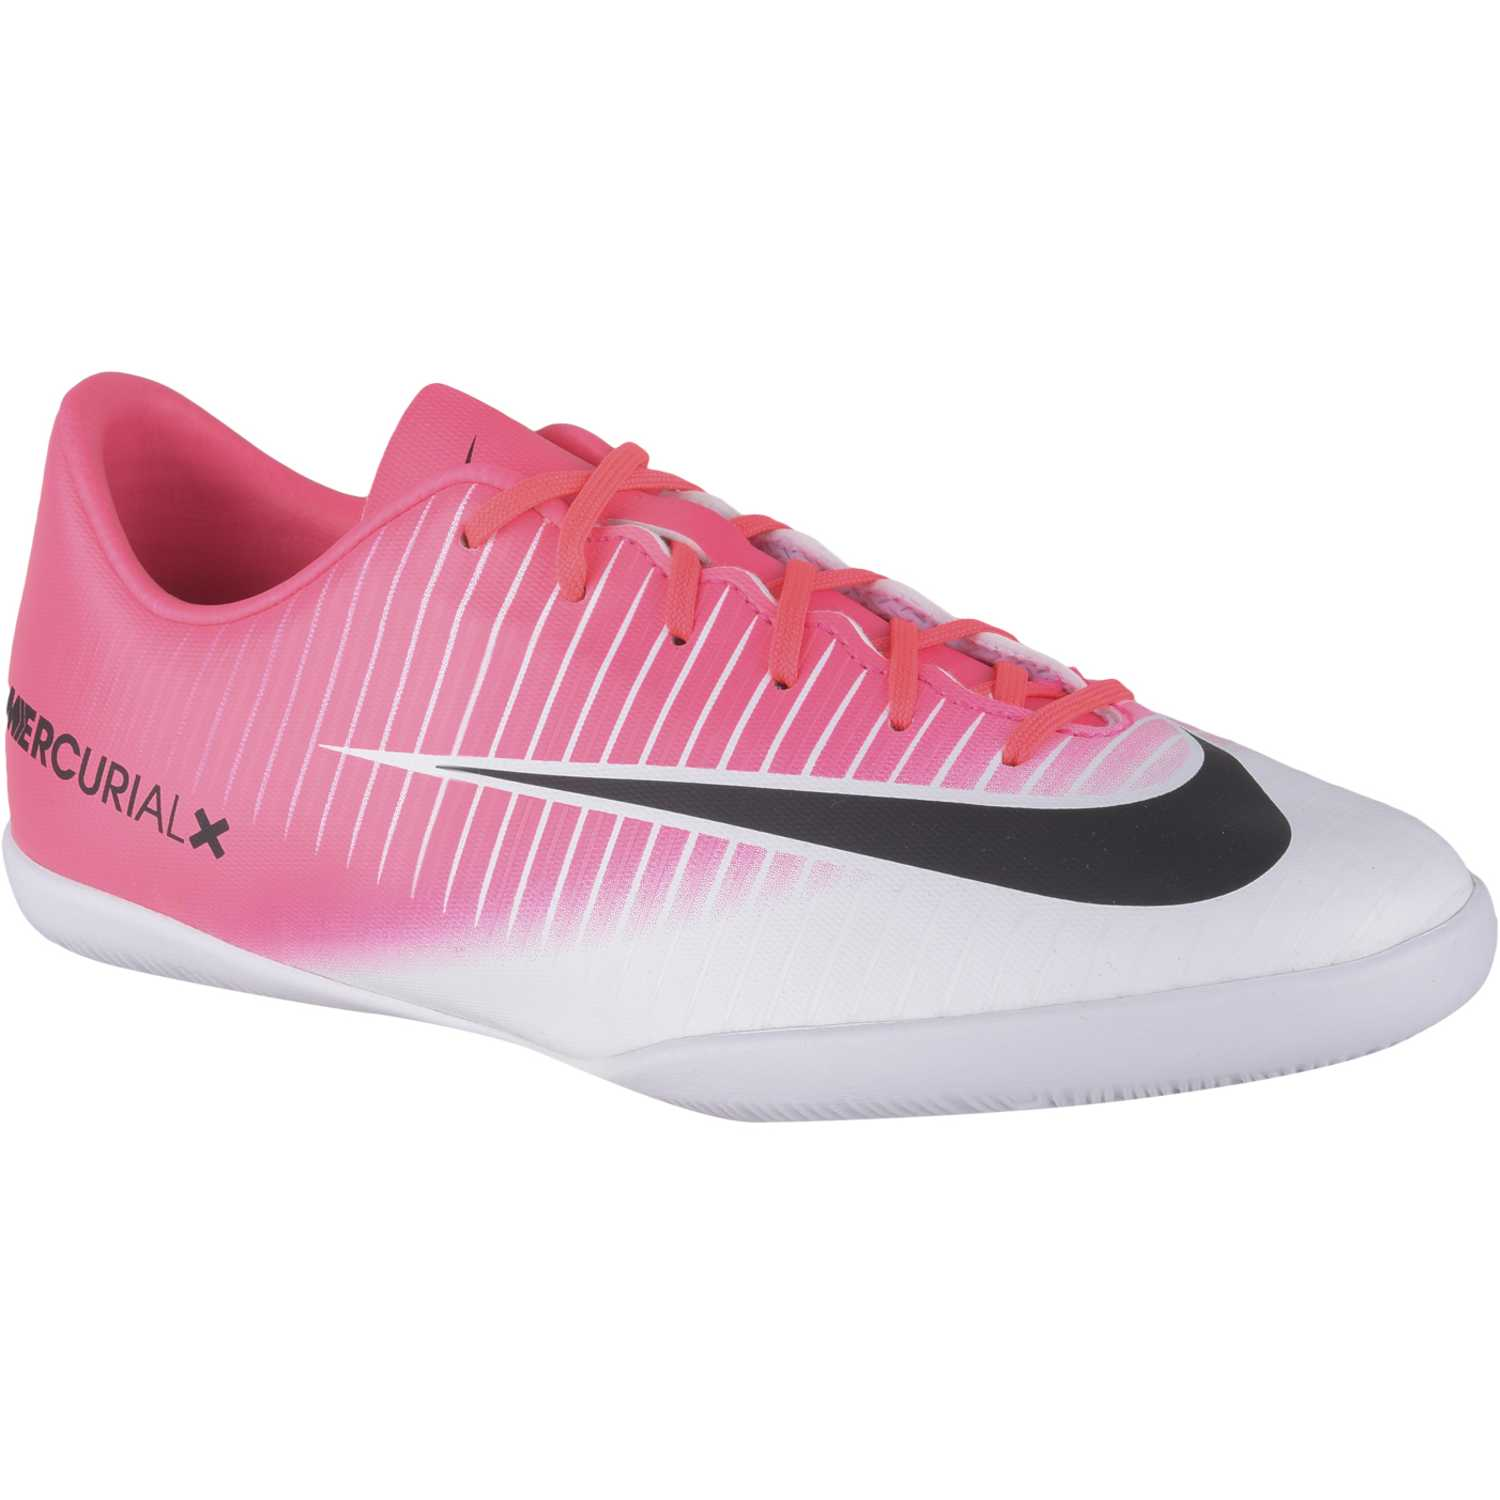 low priced b2915 40791 Zapatilla de Jovencito Nike Rosado   blanco jr mercurialx vapor xi ic